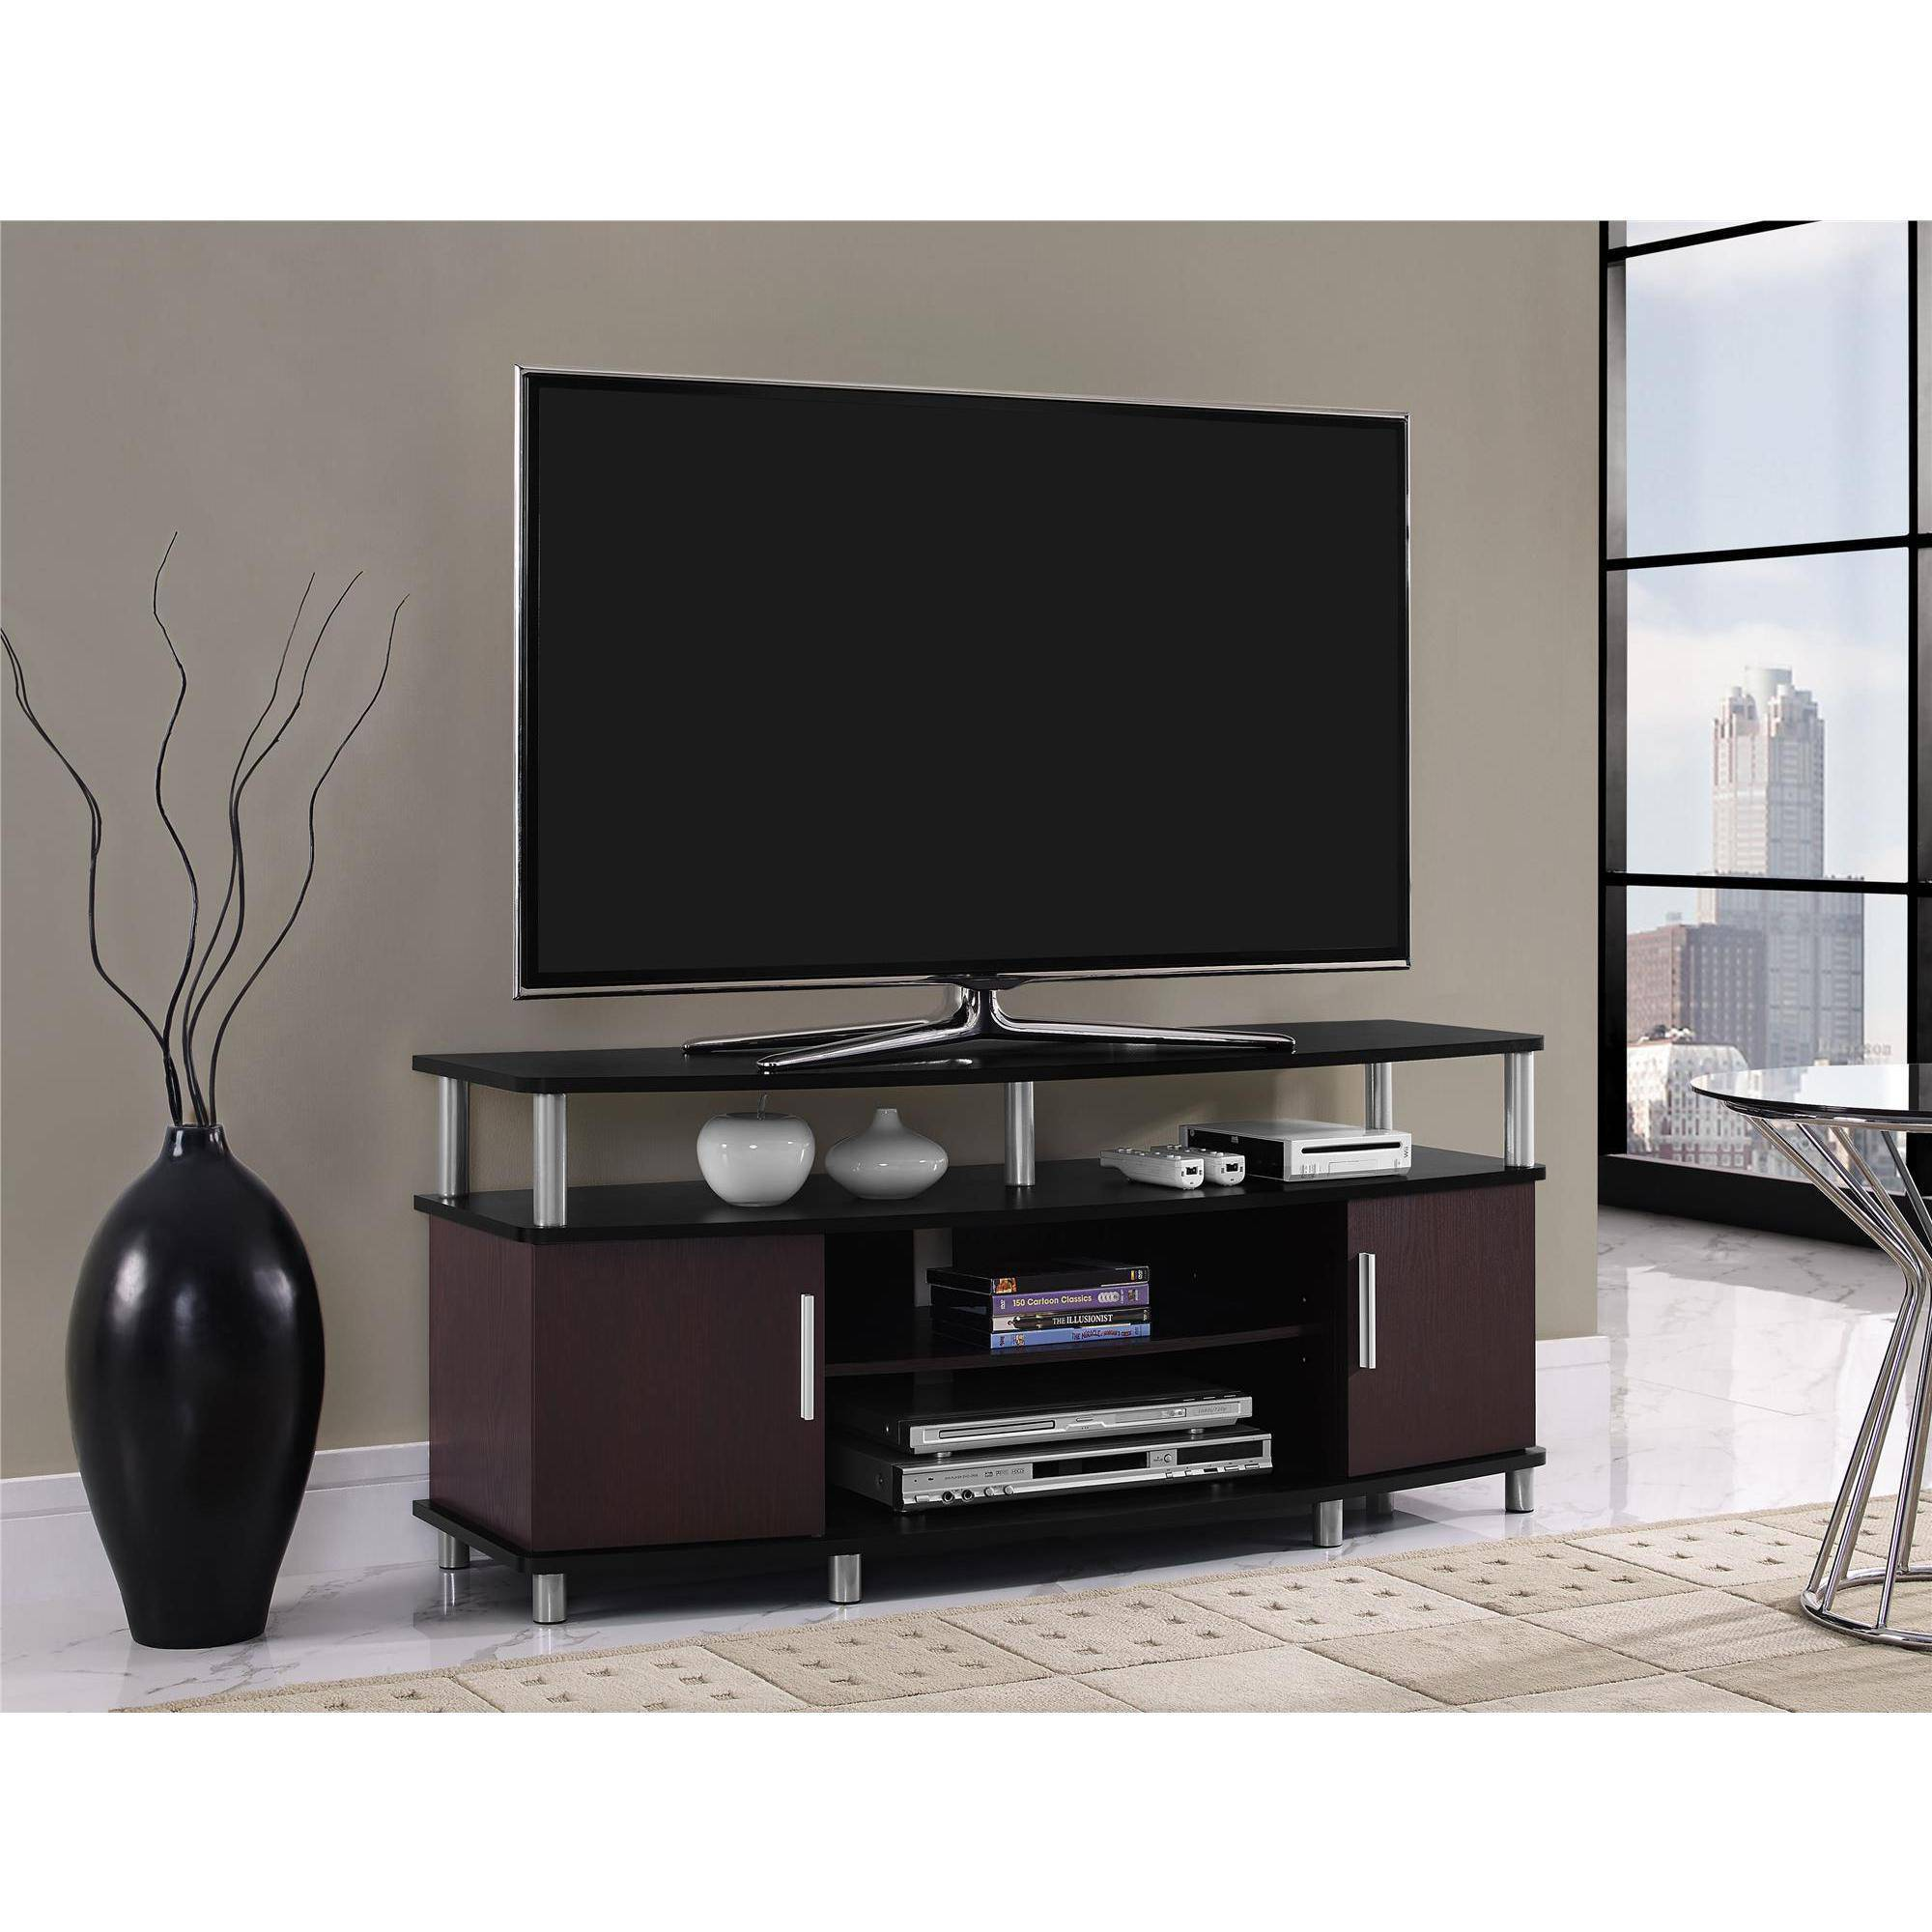 carson tv stand for tvs up to 50 multiple finishes walmartcom - Tv Stands Entertainment Centers